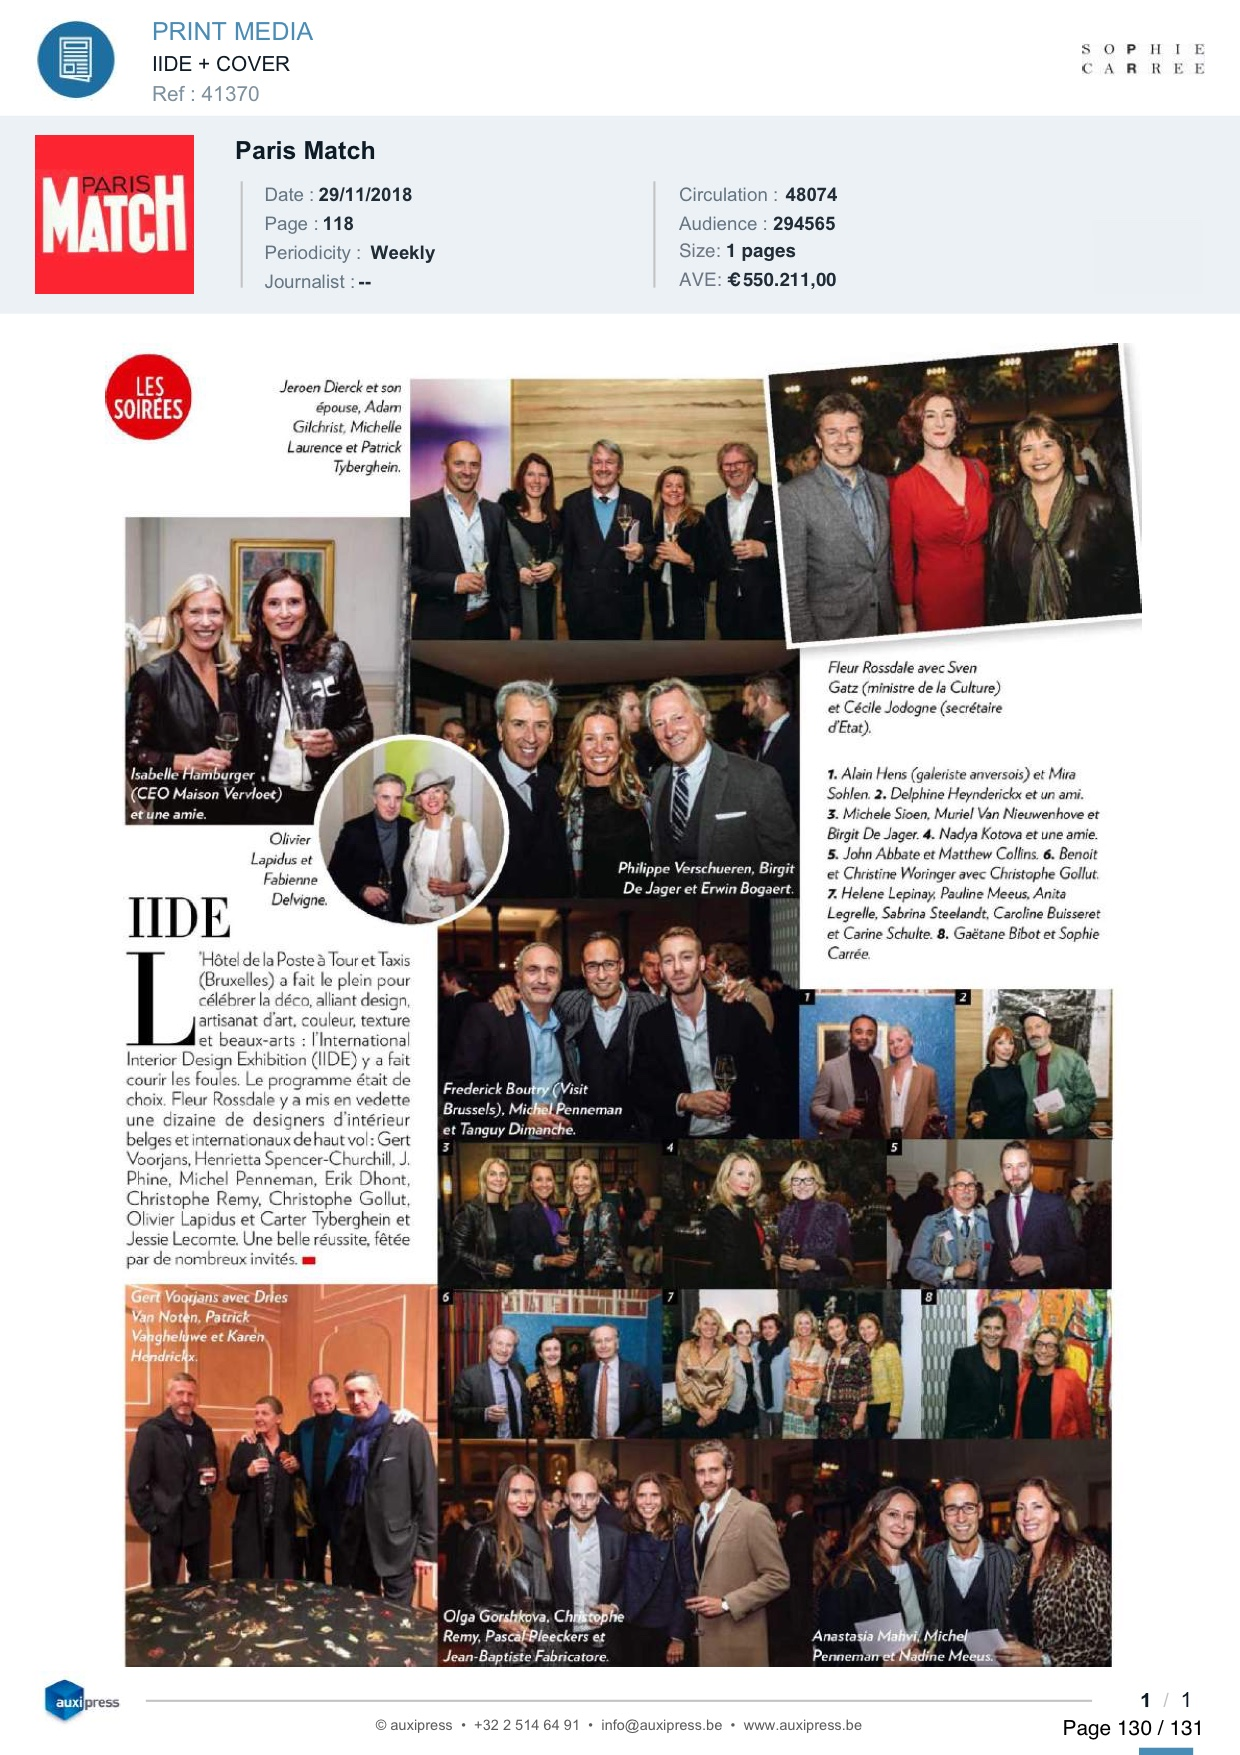 The iide Gala was attended by 450 guests in 2018 and by 650 guests in 2019. -